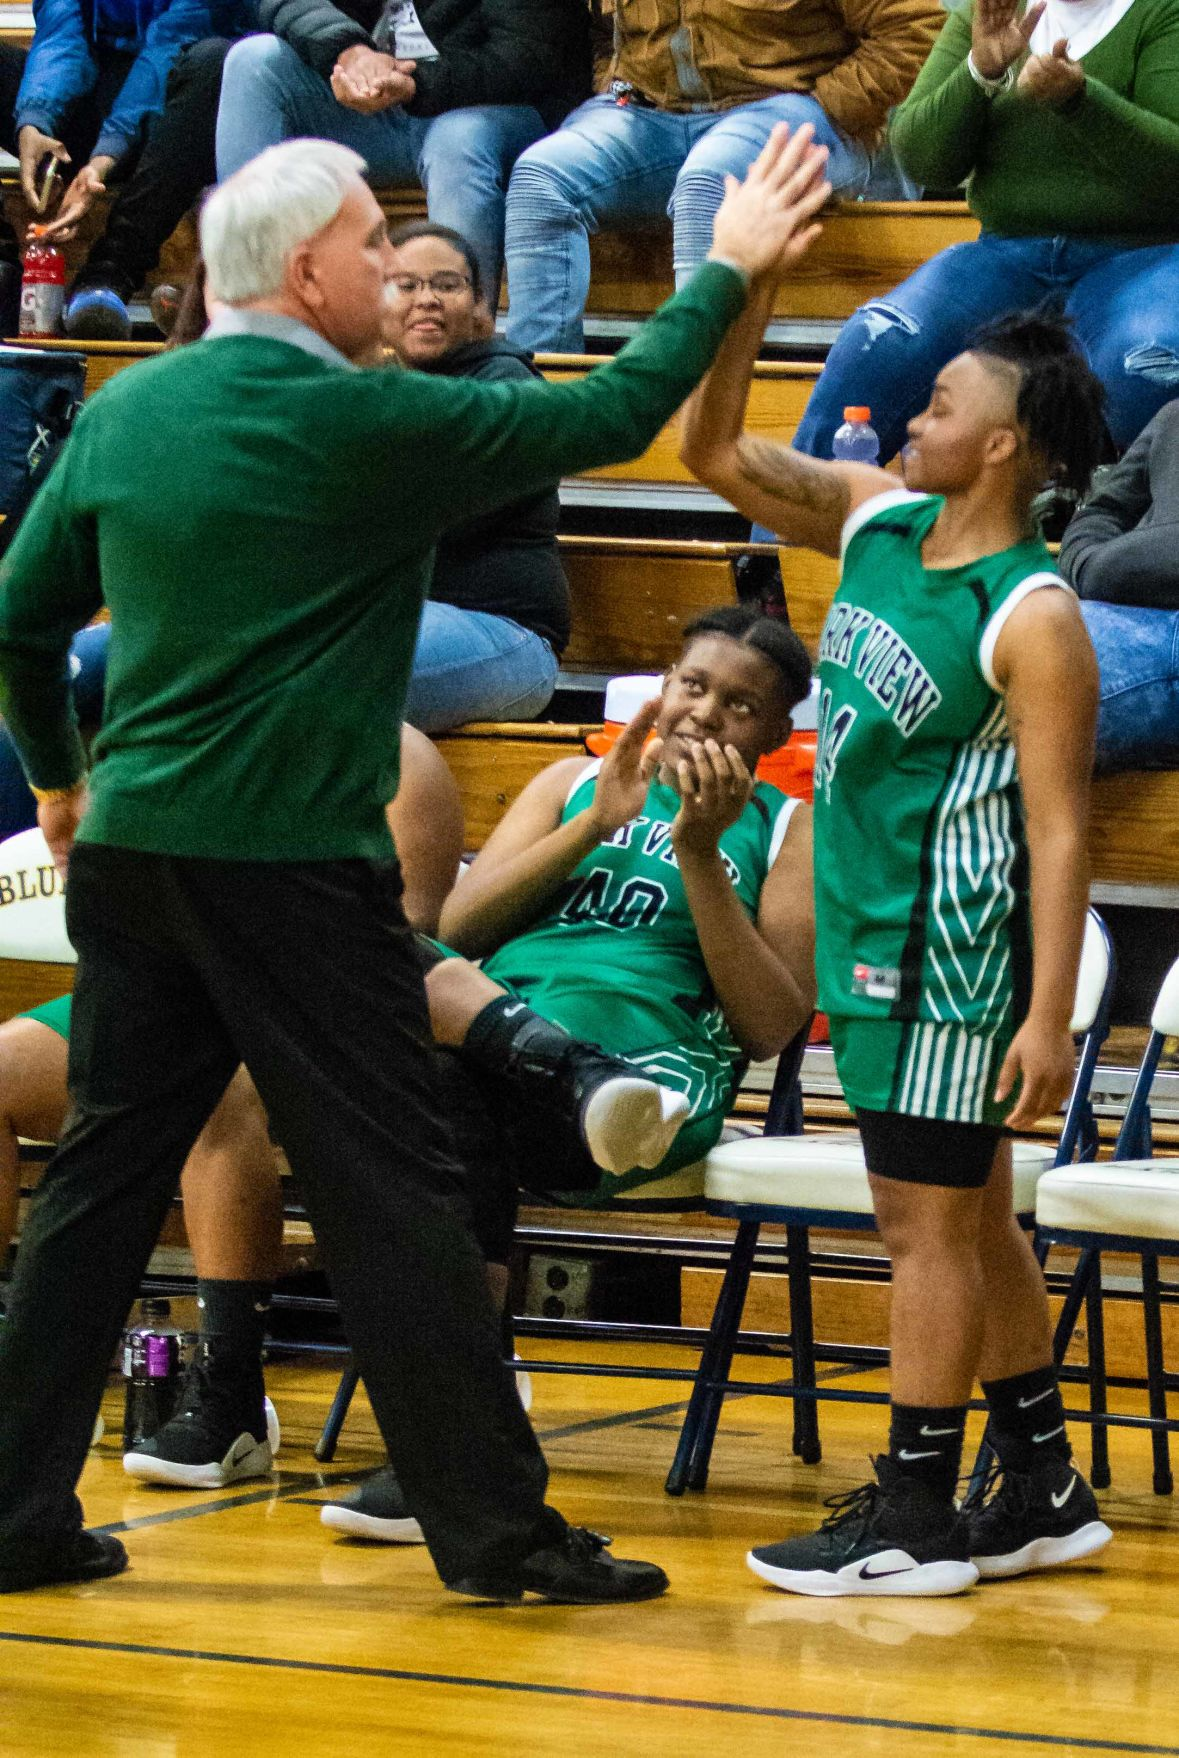 Park View HS Coach Michael Barmoy congratulates senior guard point Mikya Harrison after the announcement that she had just scored her 1,000th point in the Lady Dragons' 53-34 win over Bluestone HS in Skipwith on Friday night. (Dennis Smith)